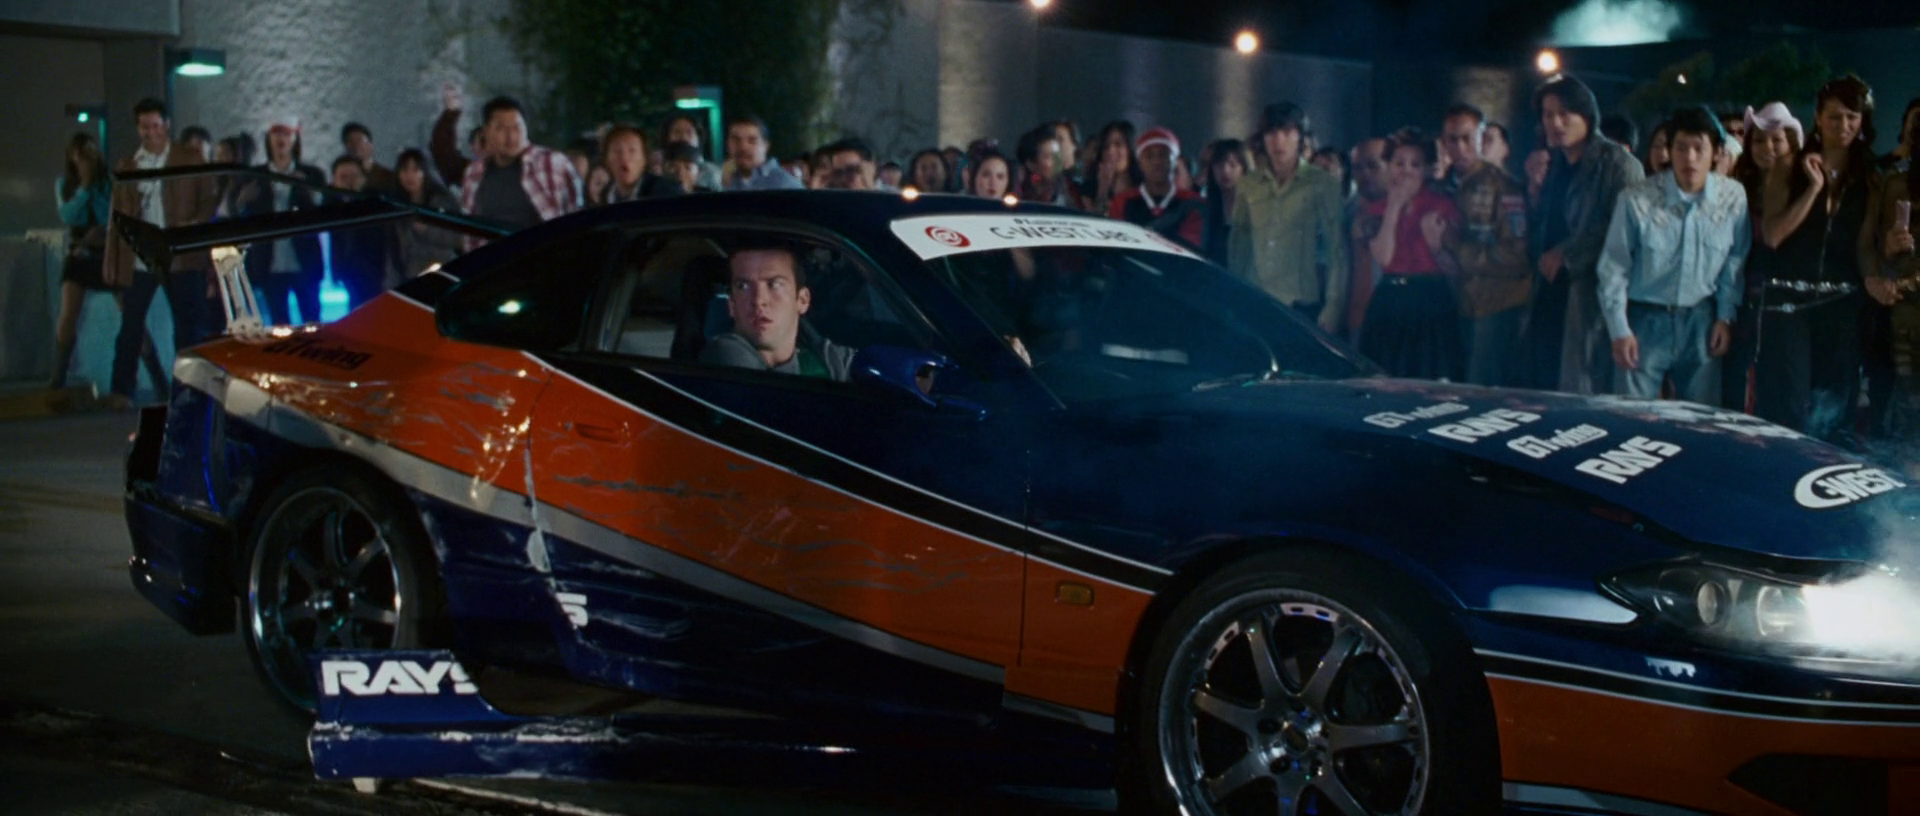 fast and furious paul walker with File Nissan Silvia S15  Mona Lisa    Side View Damage on Blog Entry 1913 additionally 11 Lesser Known Facts About Wonder Woman Gal Gadot You Should Know likewise File Nissan Silvia S15  Mona Lisa    Side View Damage also Watch in addition Then And Now The Fast And Furious Cast.